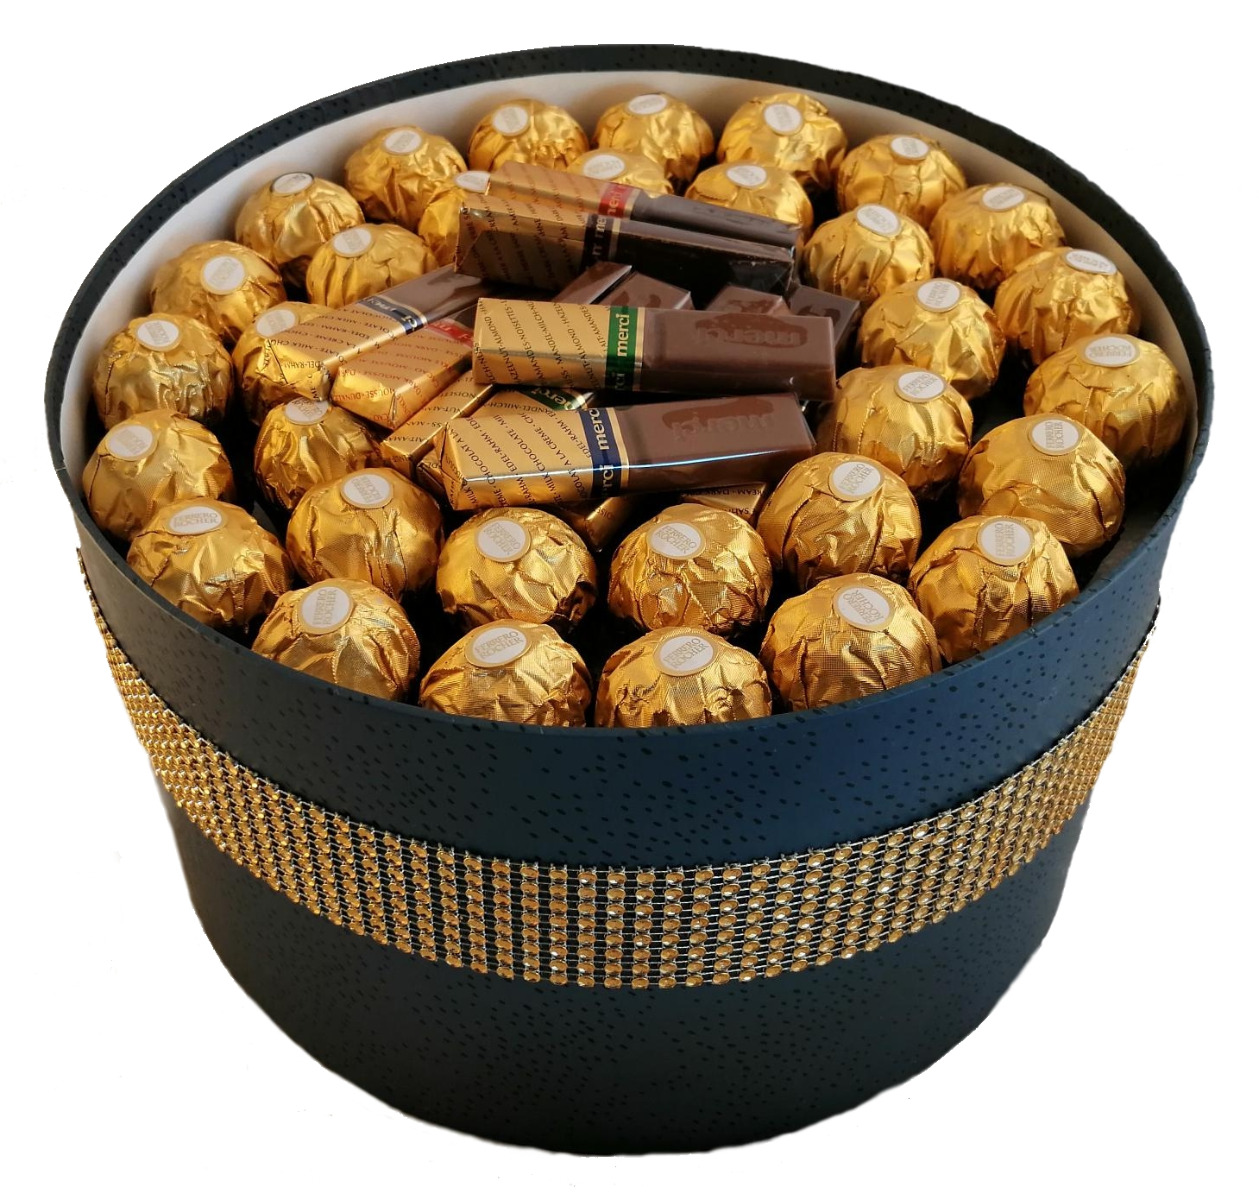 Luxury chocolate gift